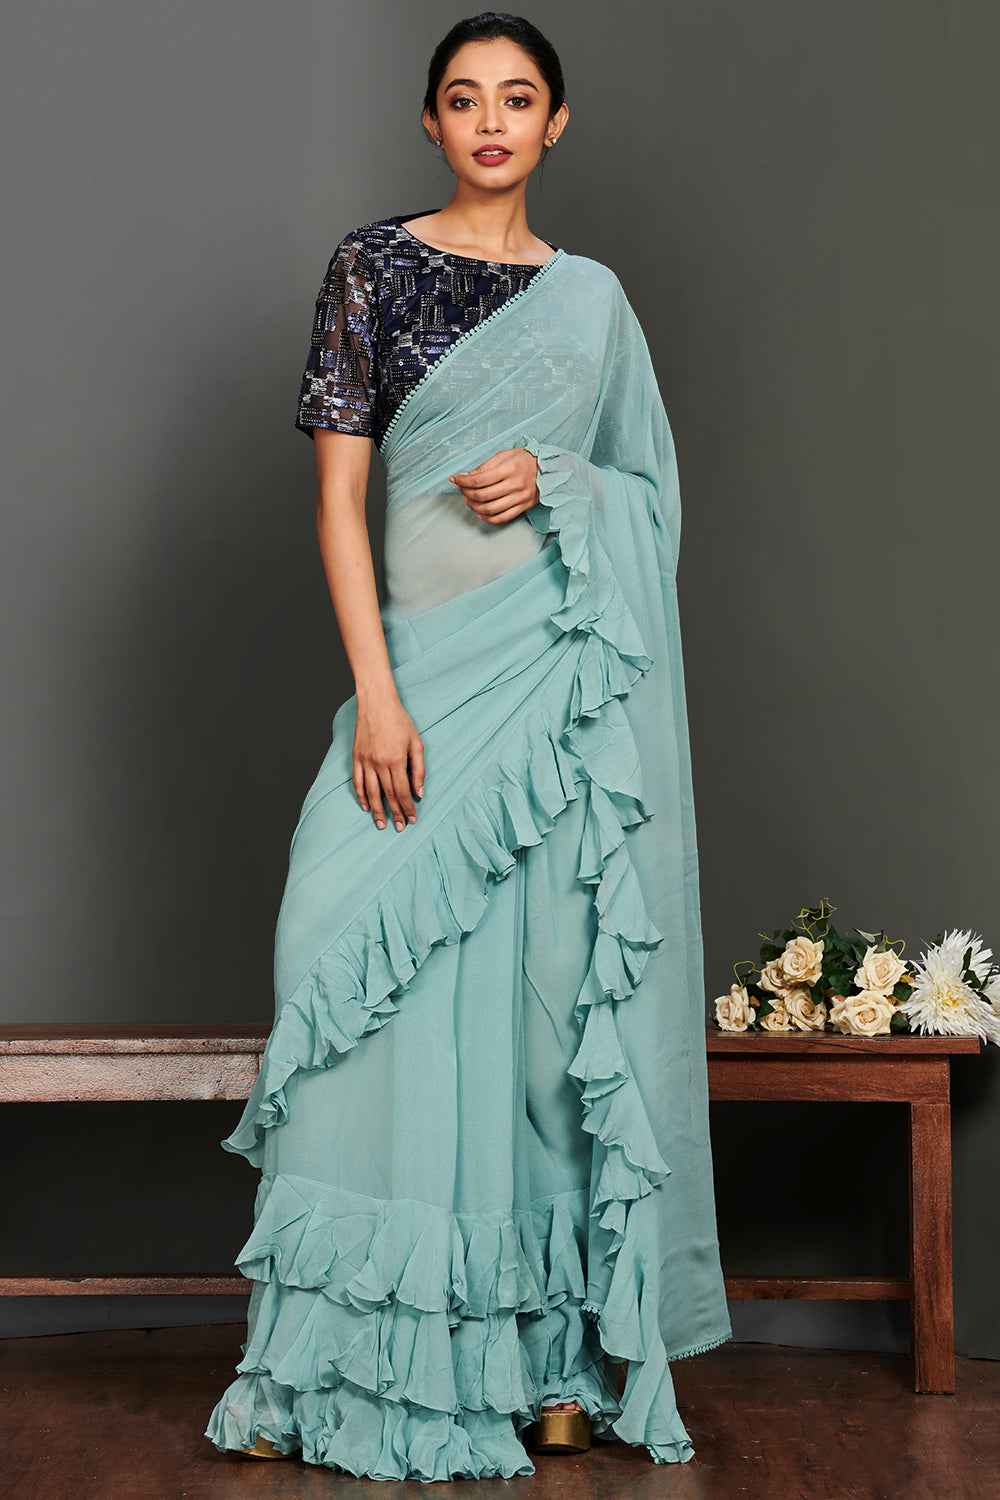 Buy stunning aqua blue georgette ruffle saree online in USA with dark blue embellished saree blouse. Make a fashion statement on festive occasions and weddings with designer suits, Indian dresses, Anarkali suits, palazzo suits, designer gowns, sharara suits from Pure Elegance Indian fashion store in USA.-full view